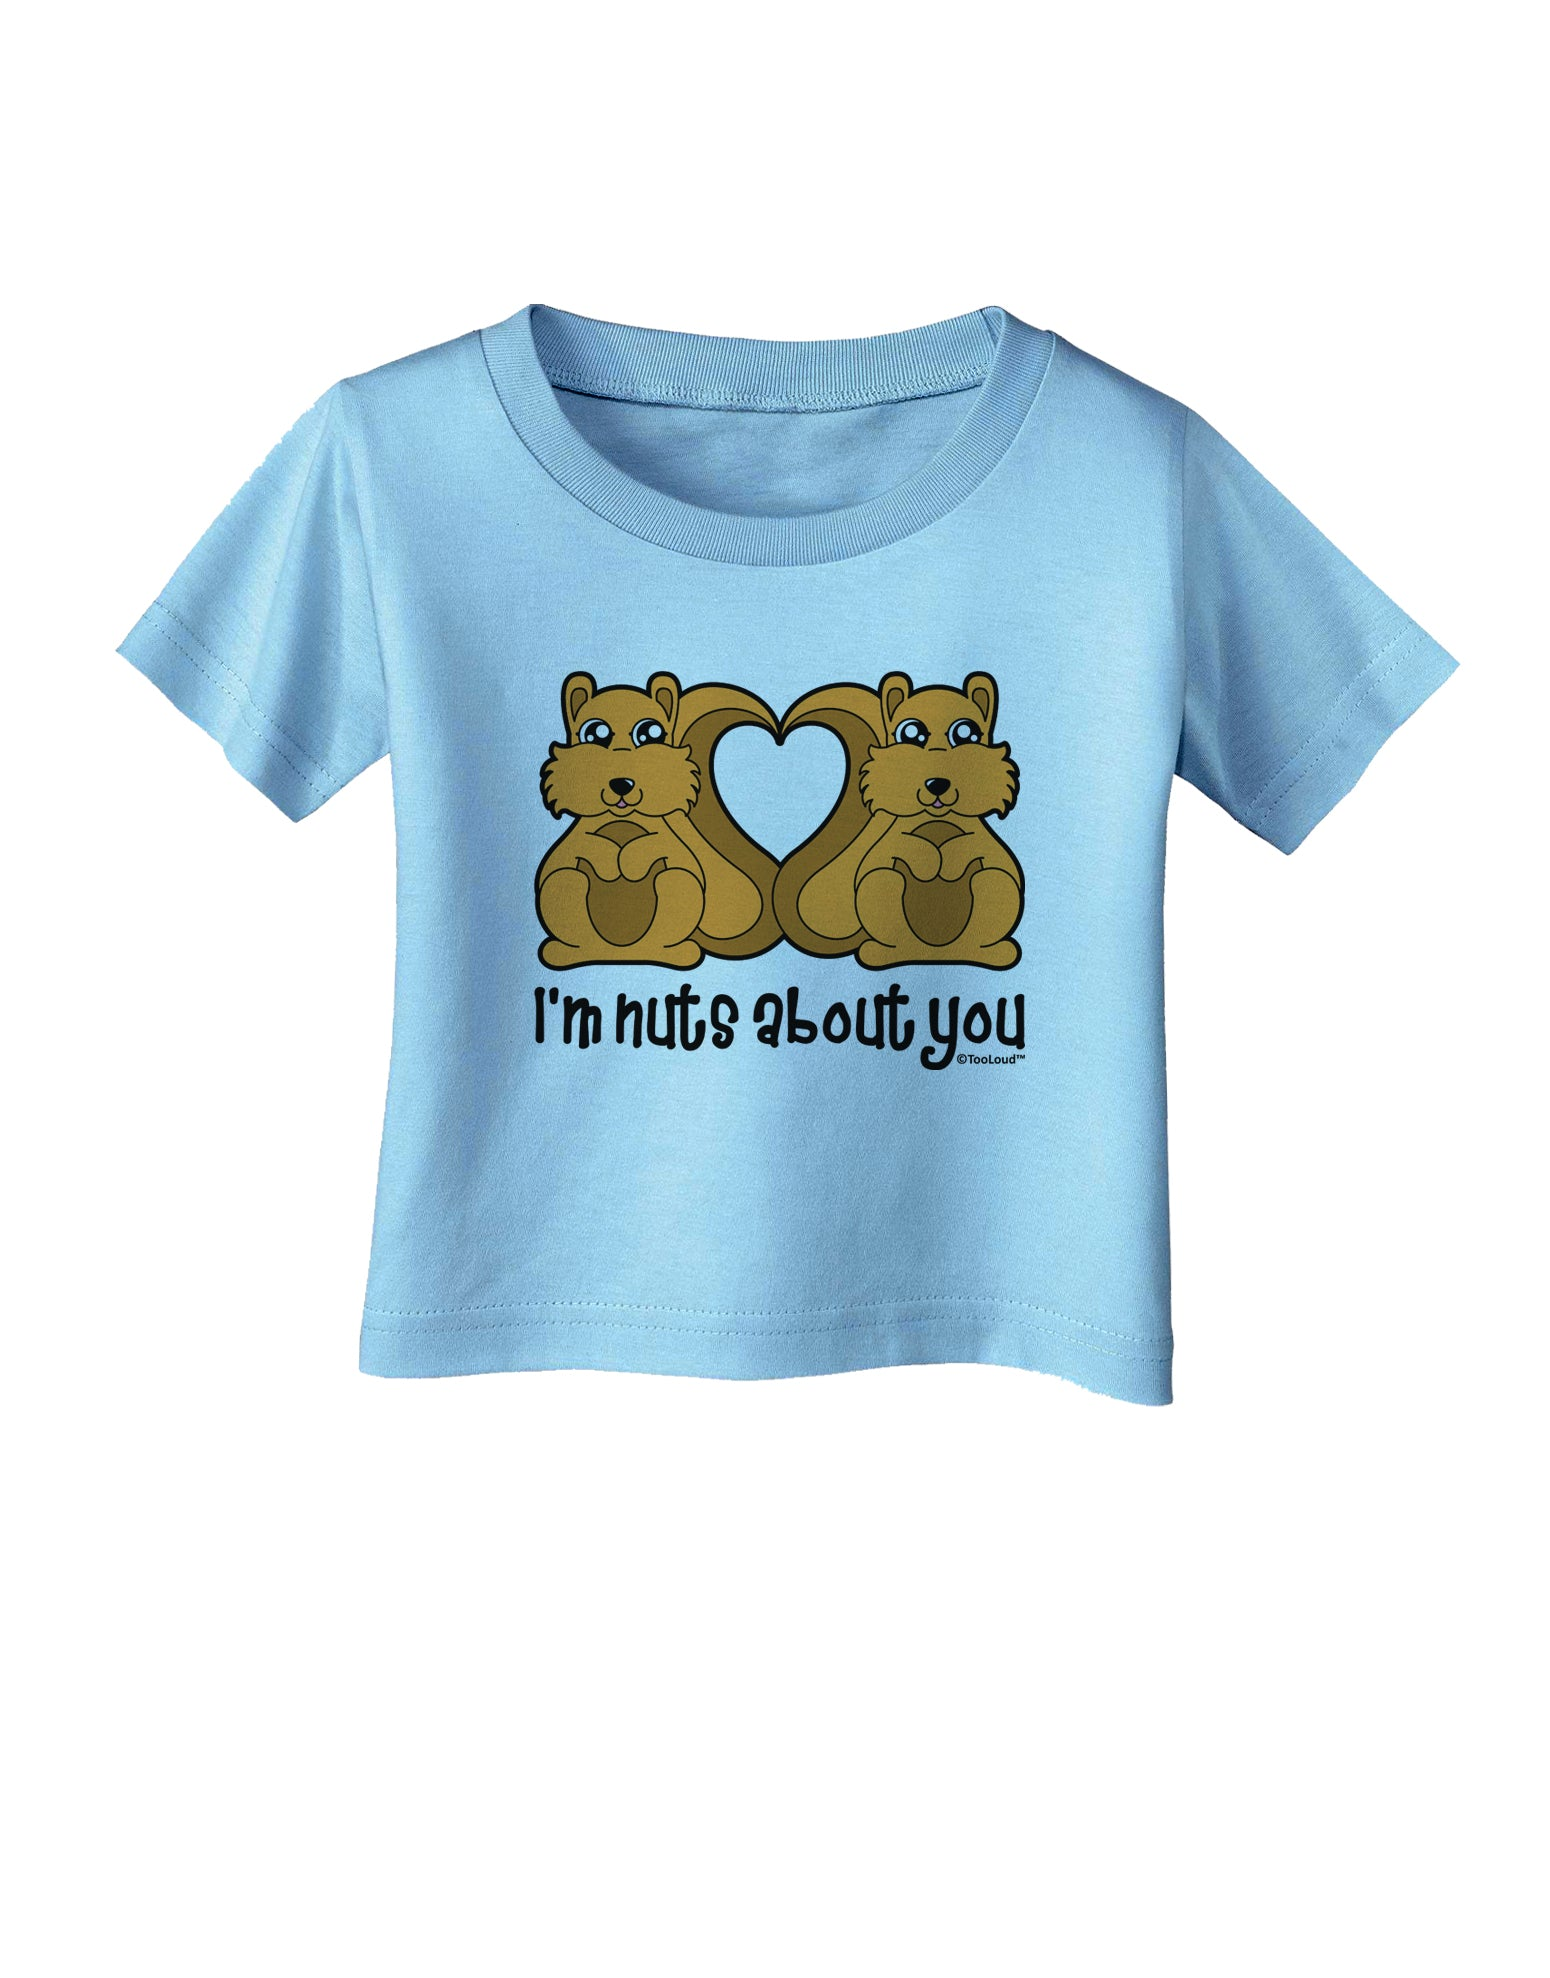 TooLoud Chocolate and Chili Toddler T-Shirt